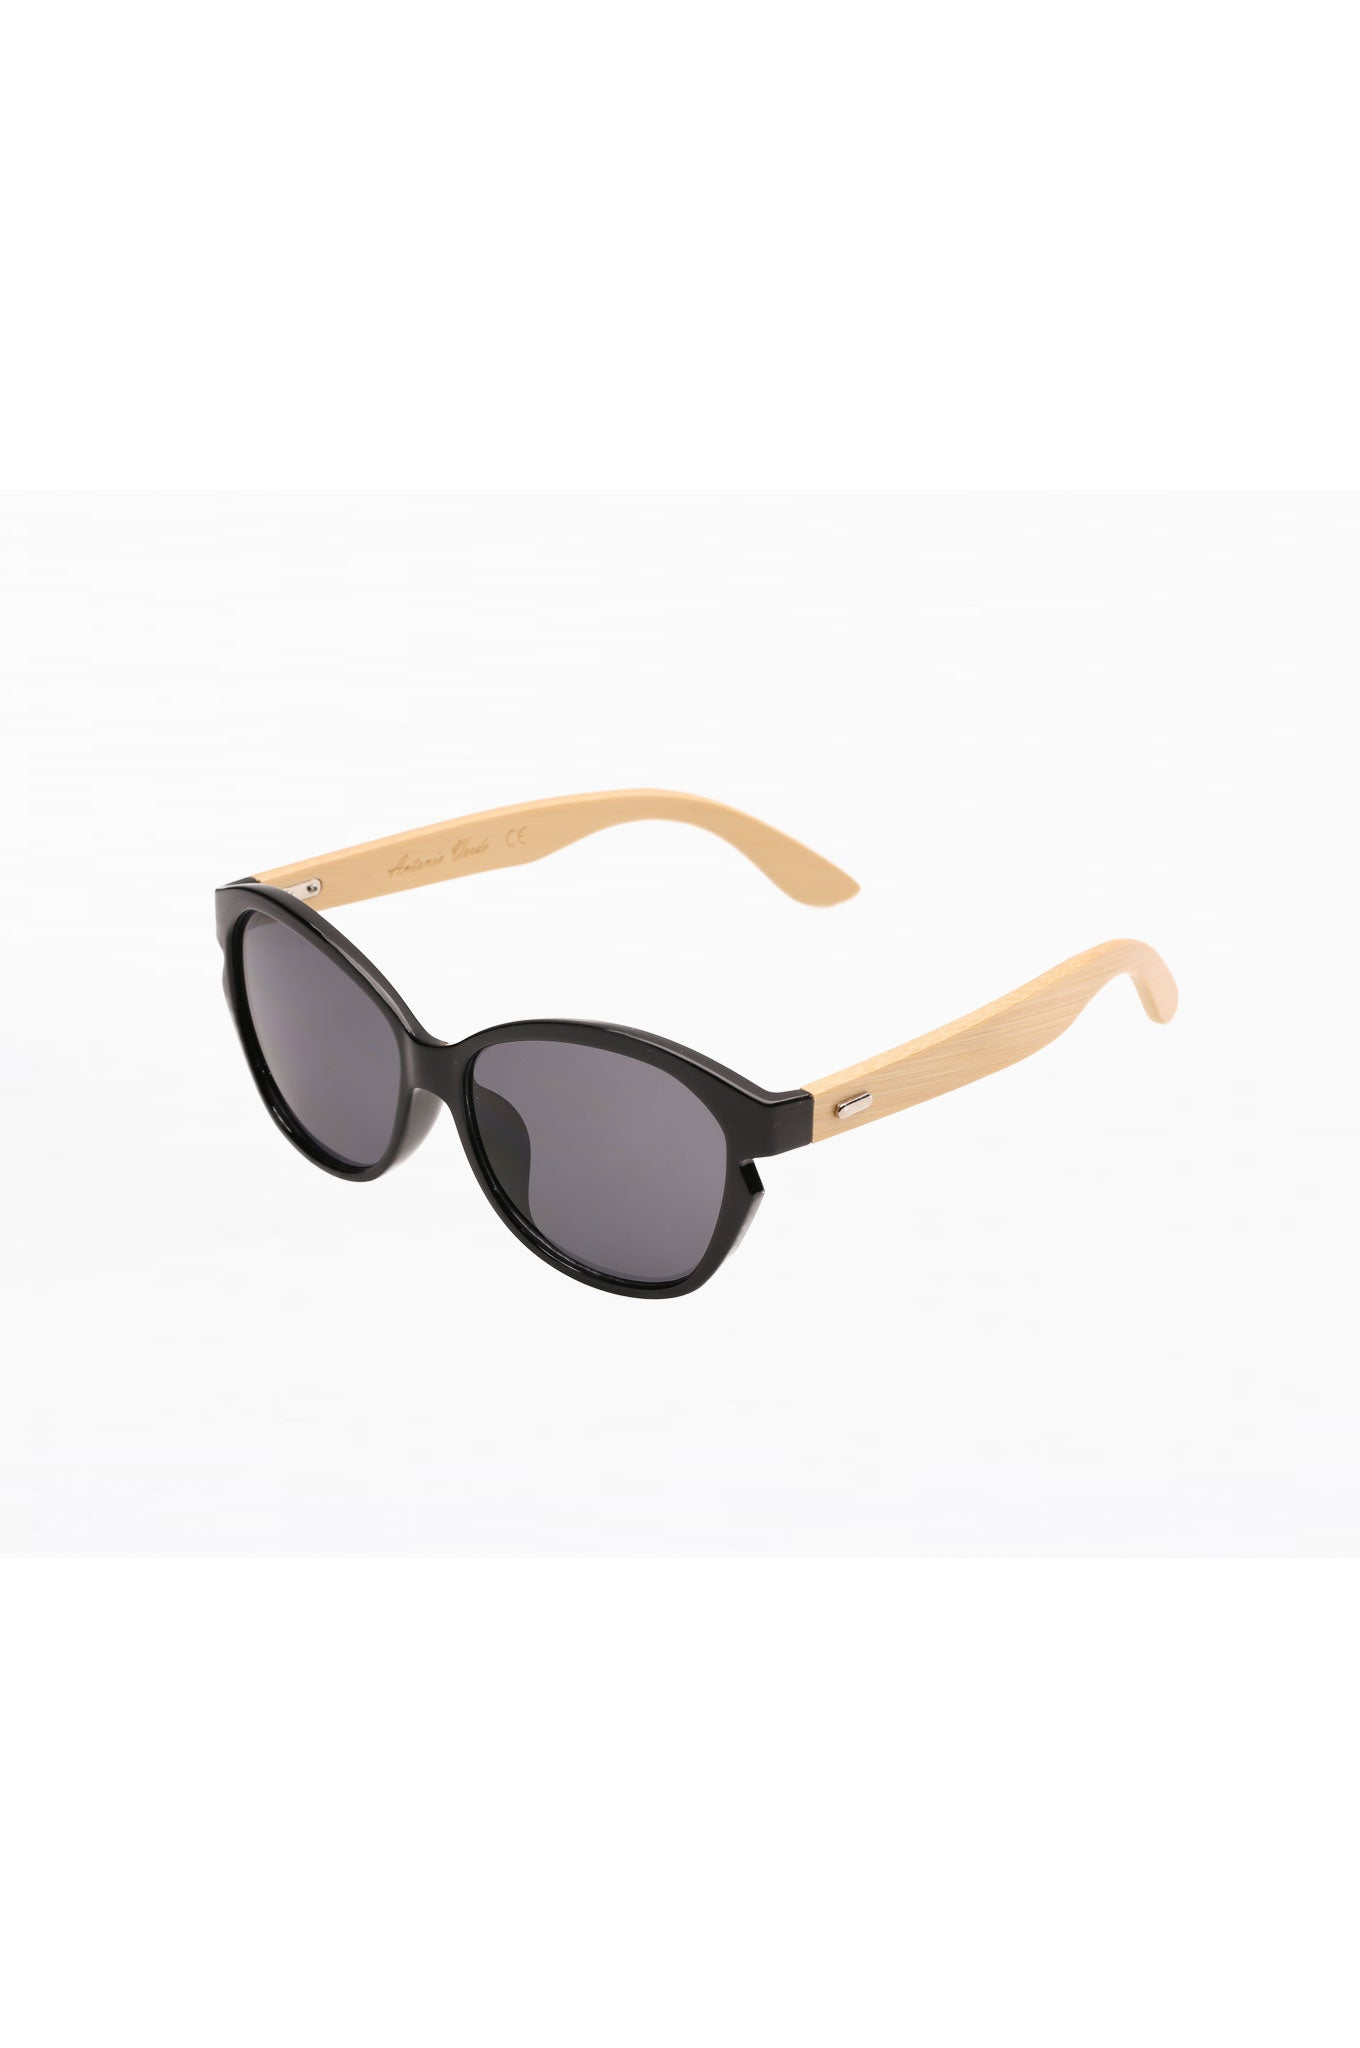 Tivoli Sunglasses Black